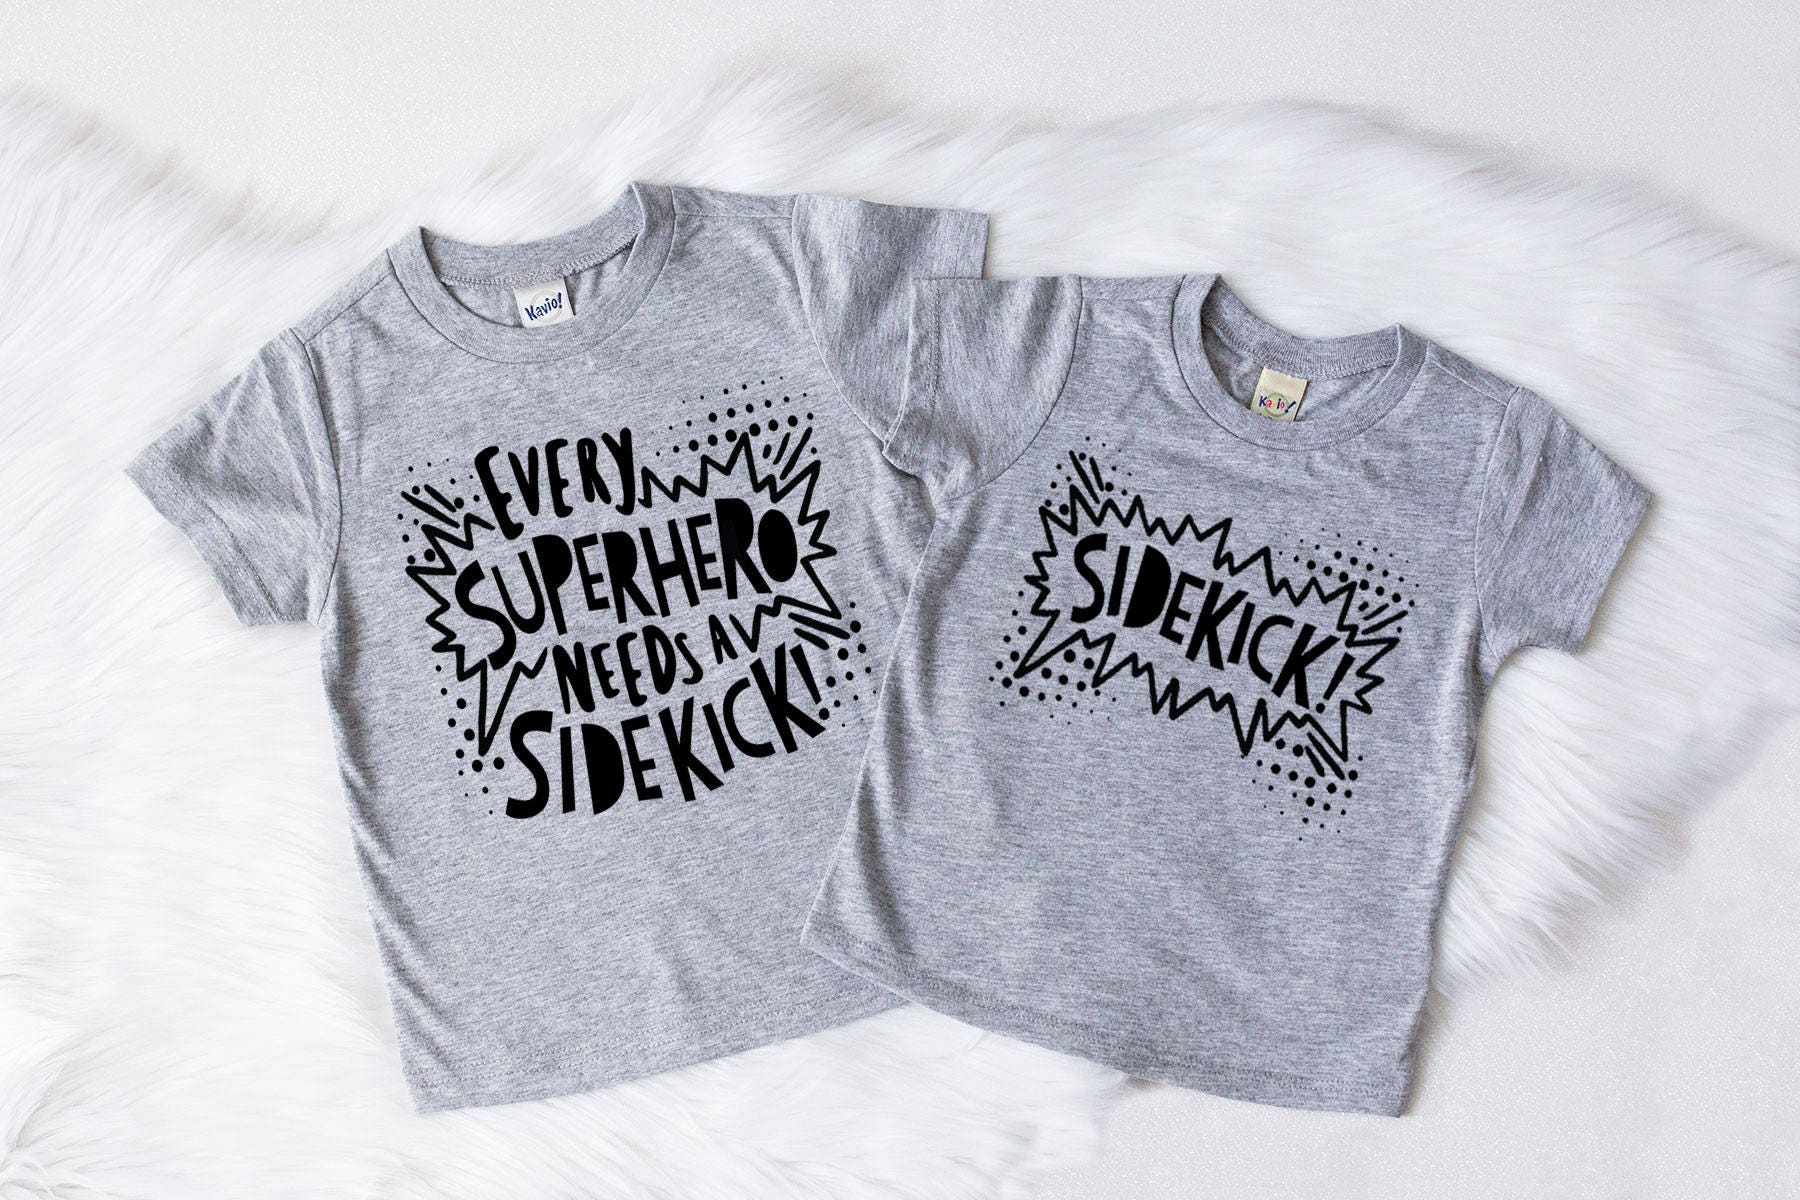 Superhero Shirt Superhero Sidekick Big Brother Little